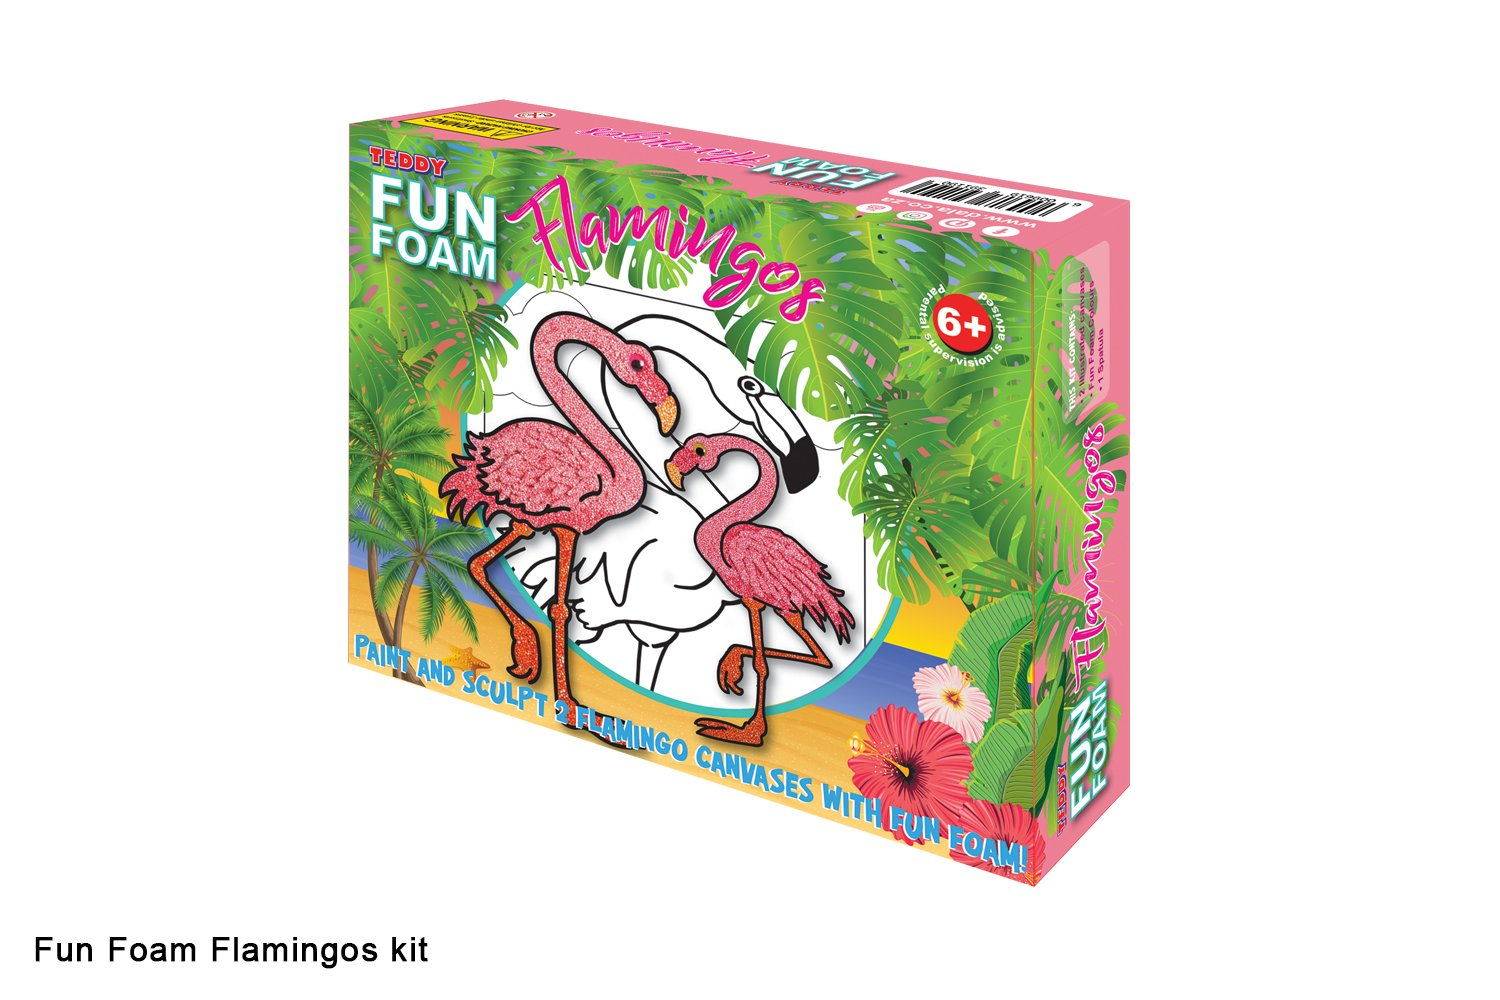 Fun Foam Flamingos Kit